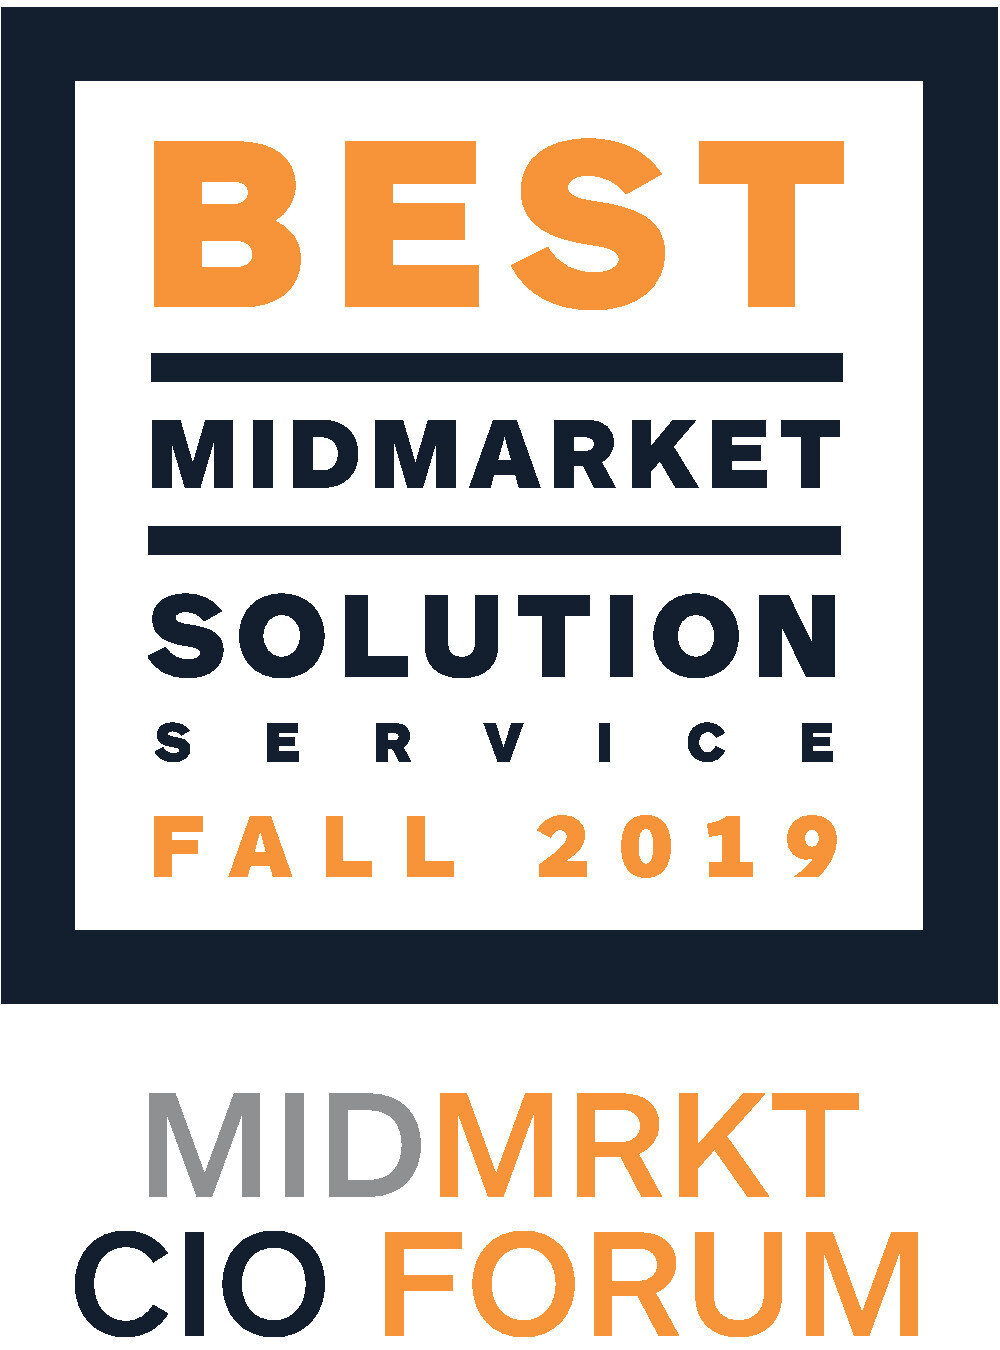 MCIOF Solution - Service 2019 Fall.jpg